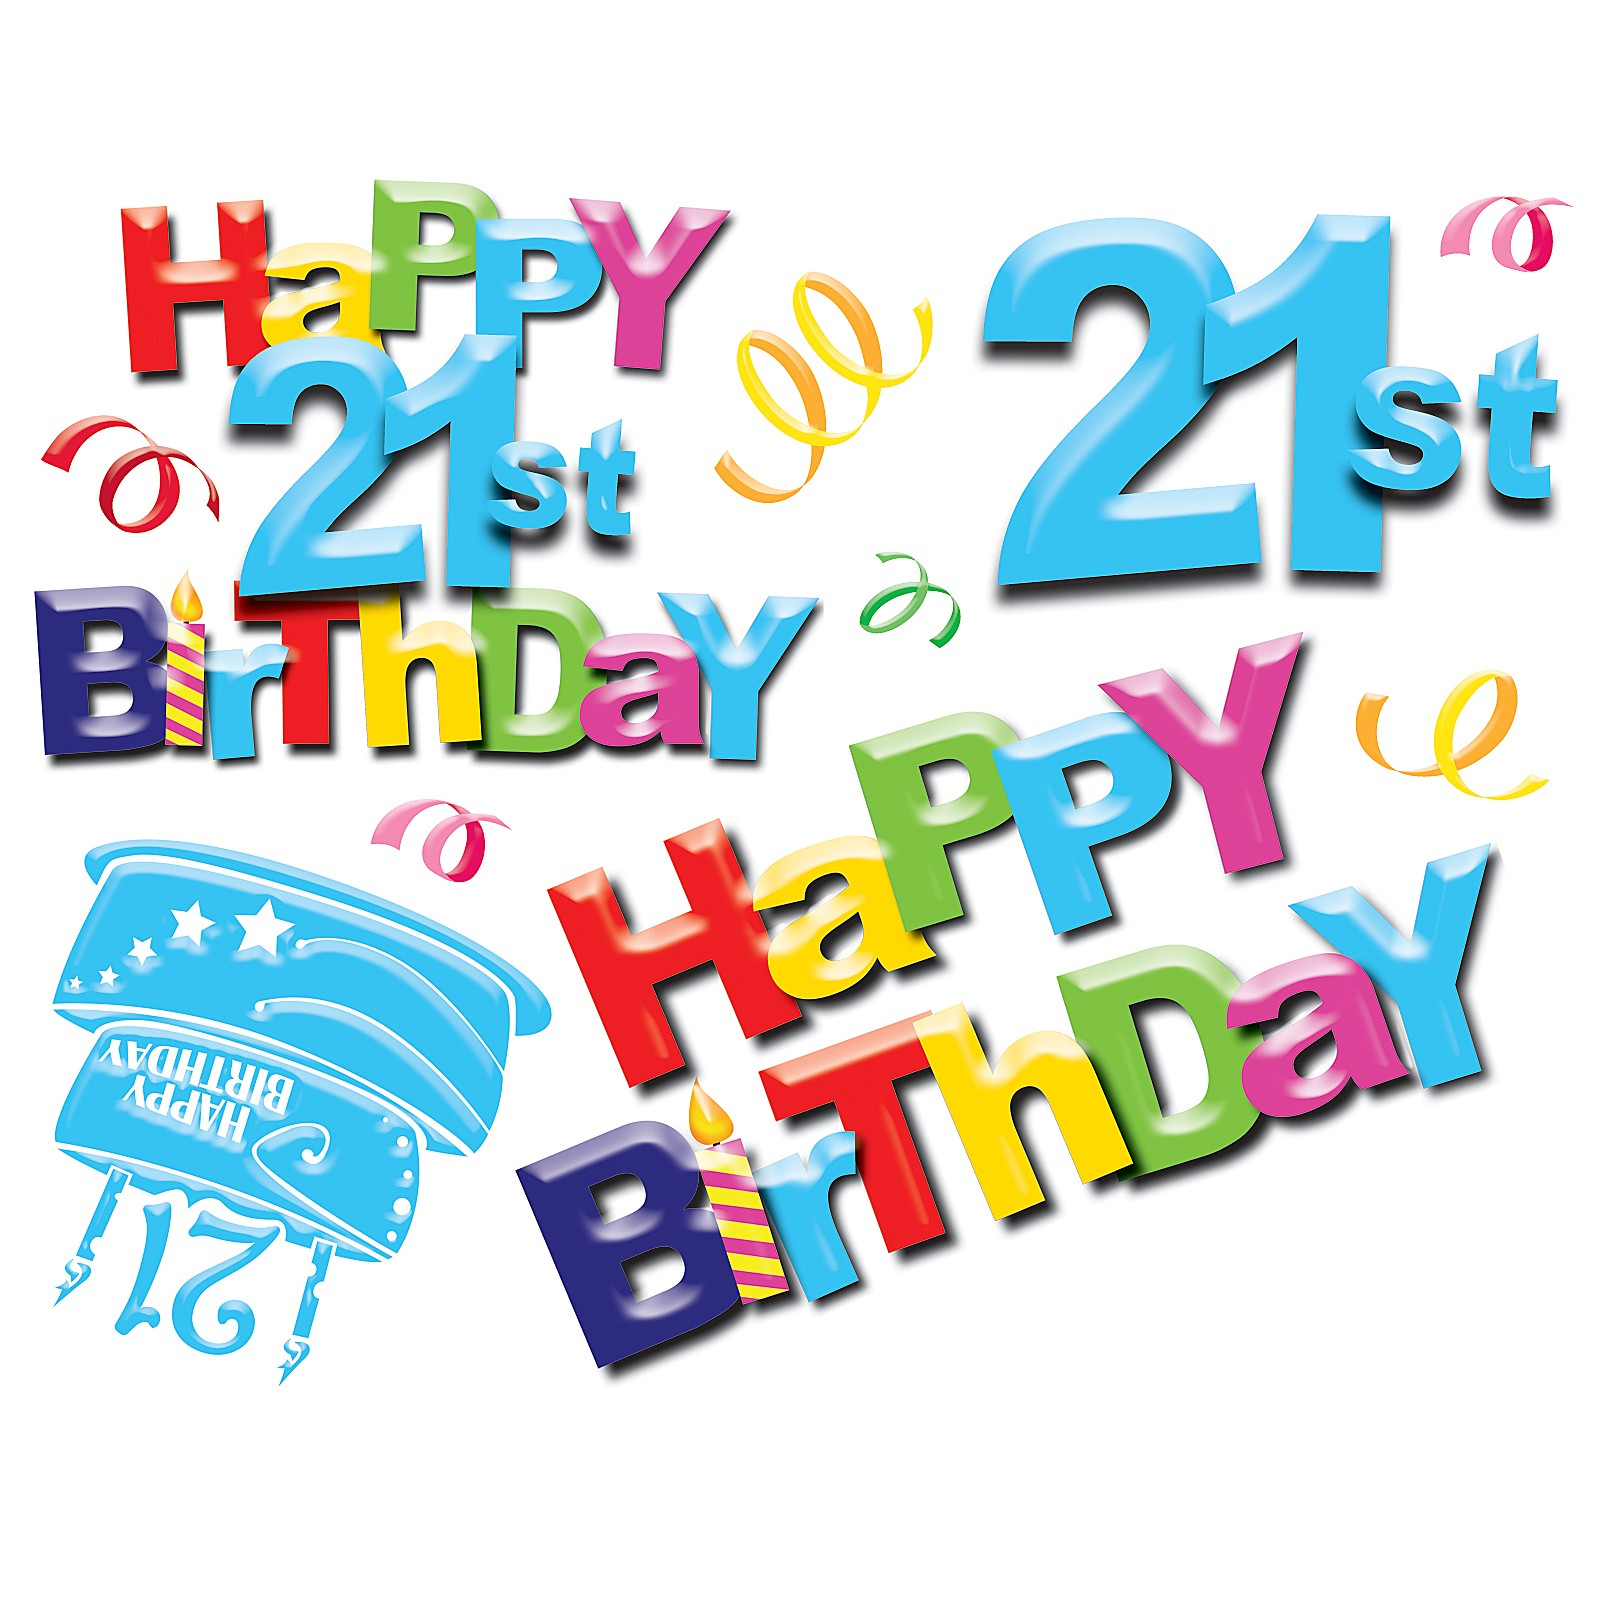 Free clipart for happy birthday for nephew